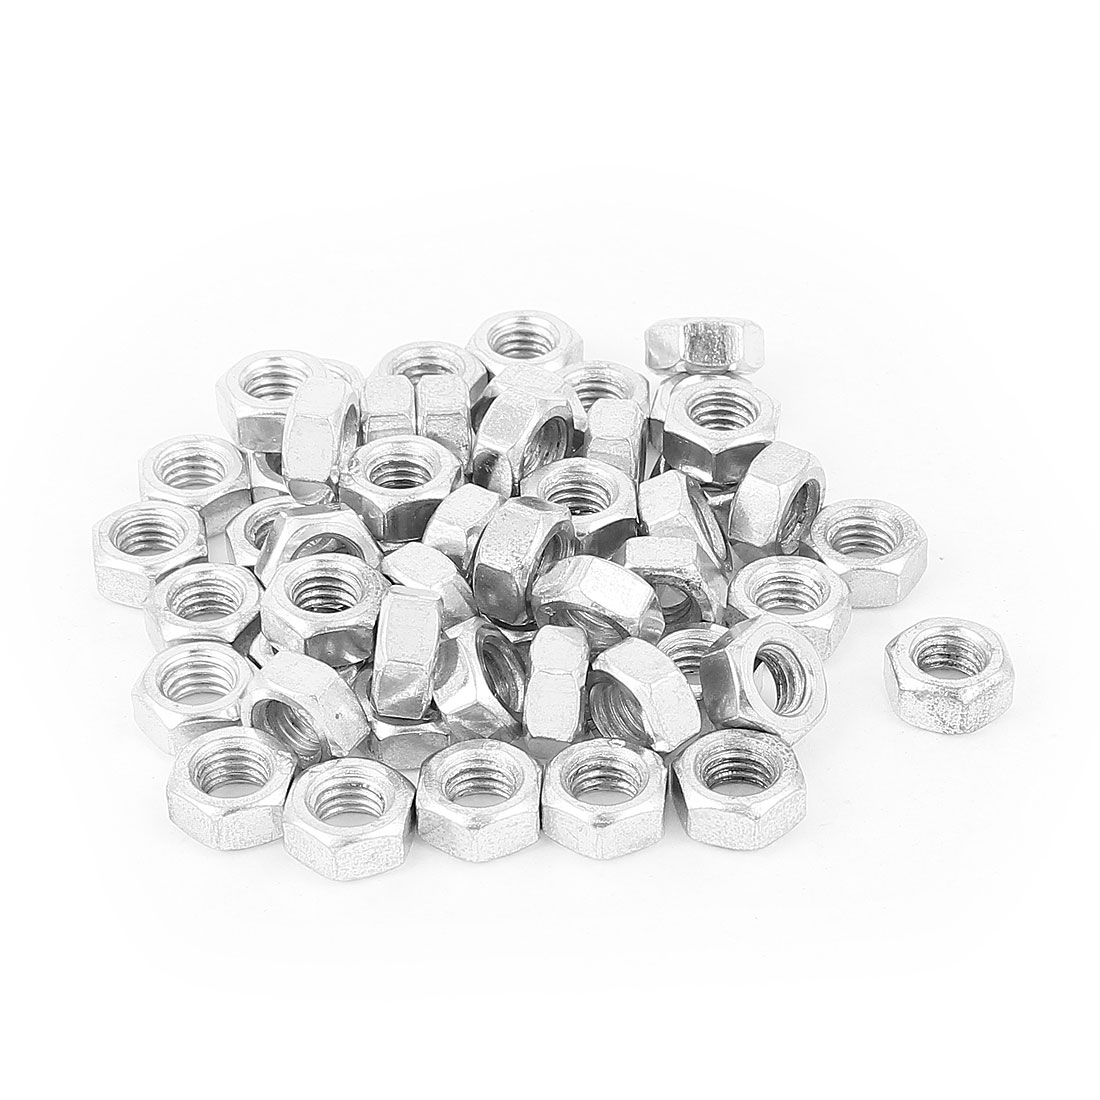 52 Pcs Metric M8 Hex Nuts Metal Fasteners for Screw Bolt